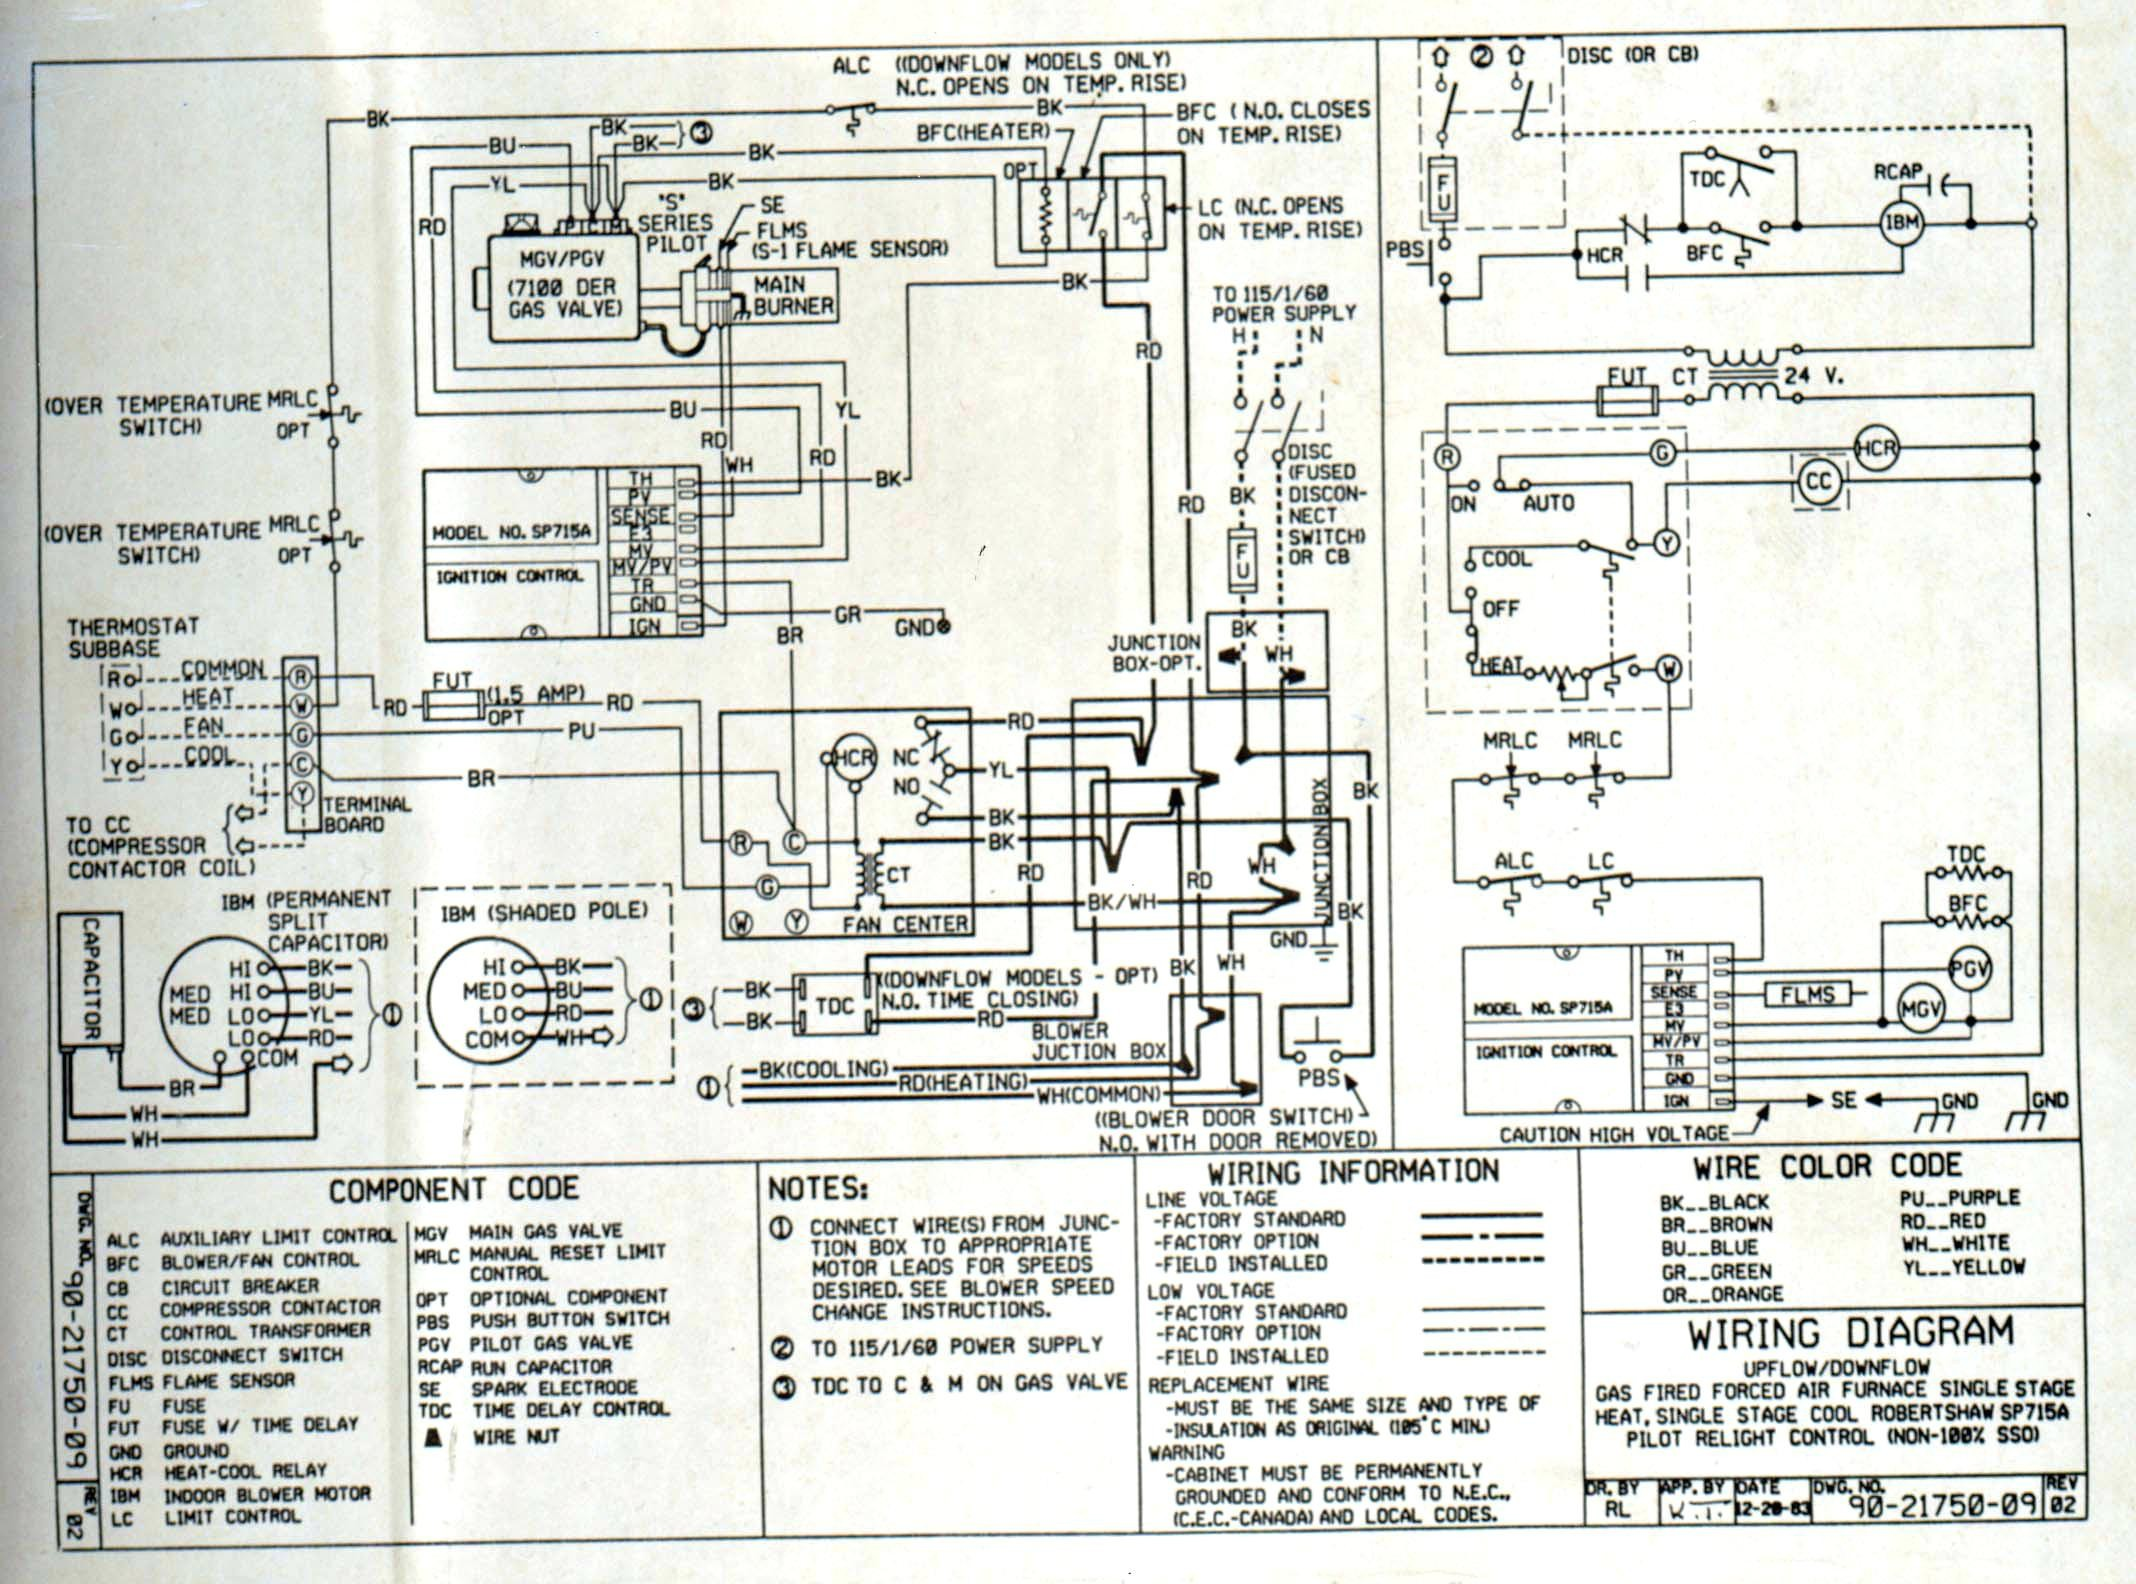 First Company Air Handler Wiring Diagram: Wiring Diagram Imagerh:mainetreasurechest.com,Design